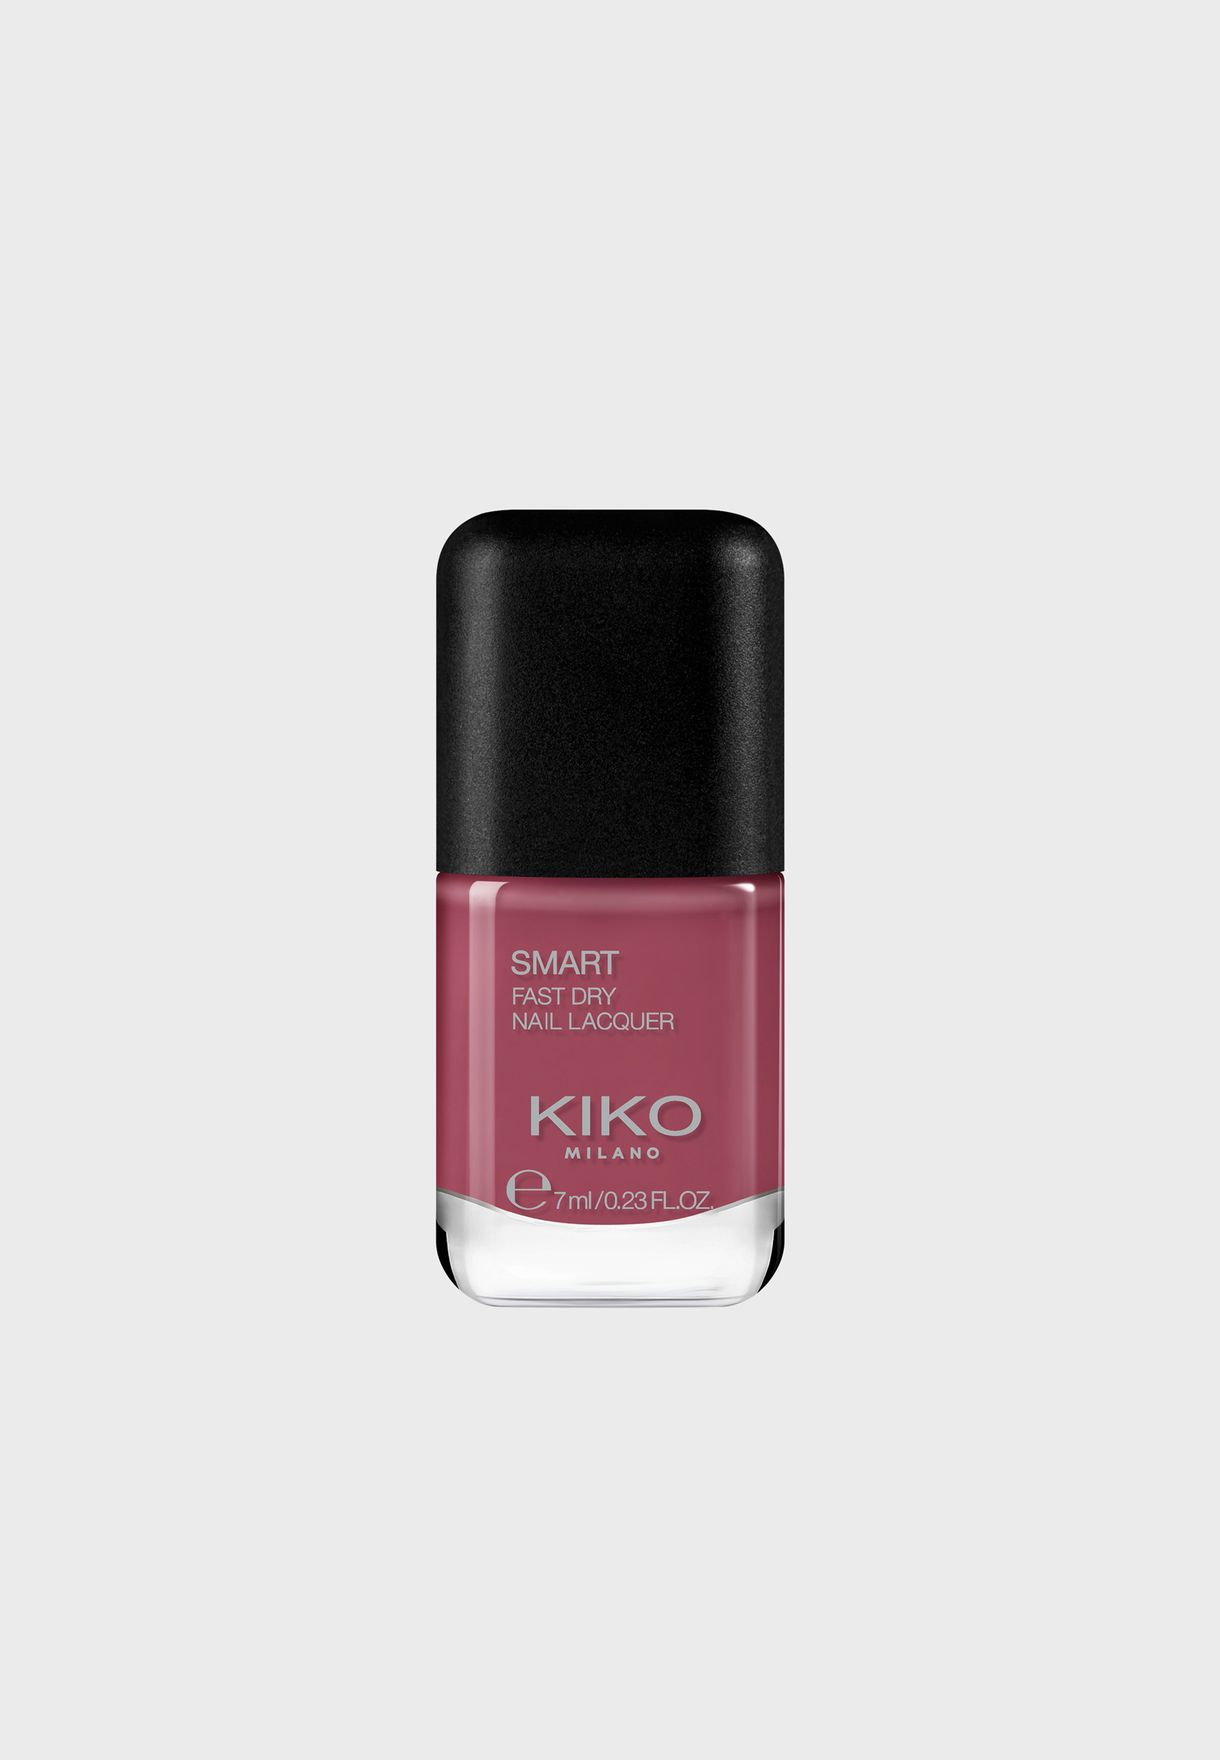 Smart Nail Lacquer - 07